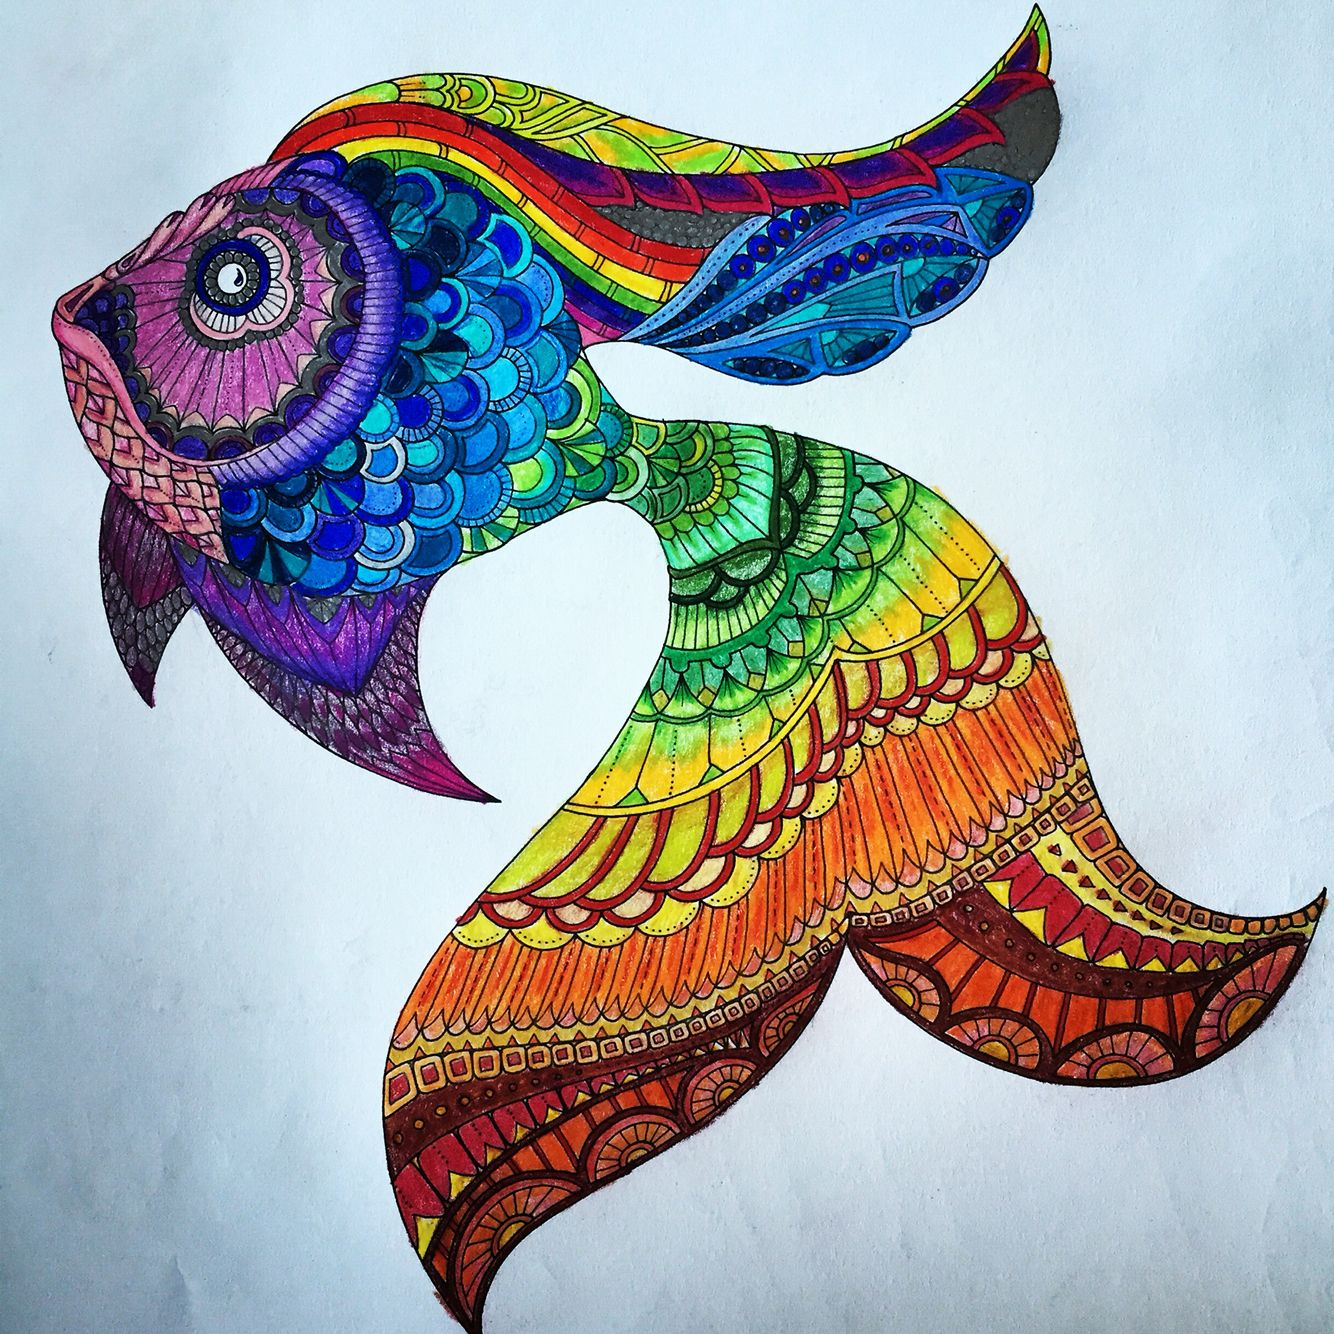 More Adult Coloring Lost Ocean By Johanna Basford Rainbow Fish Made With Prismacolor Colored Pencils